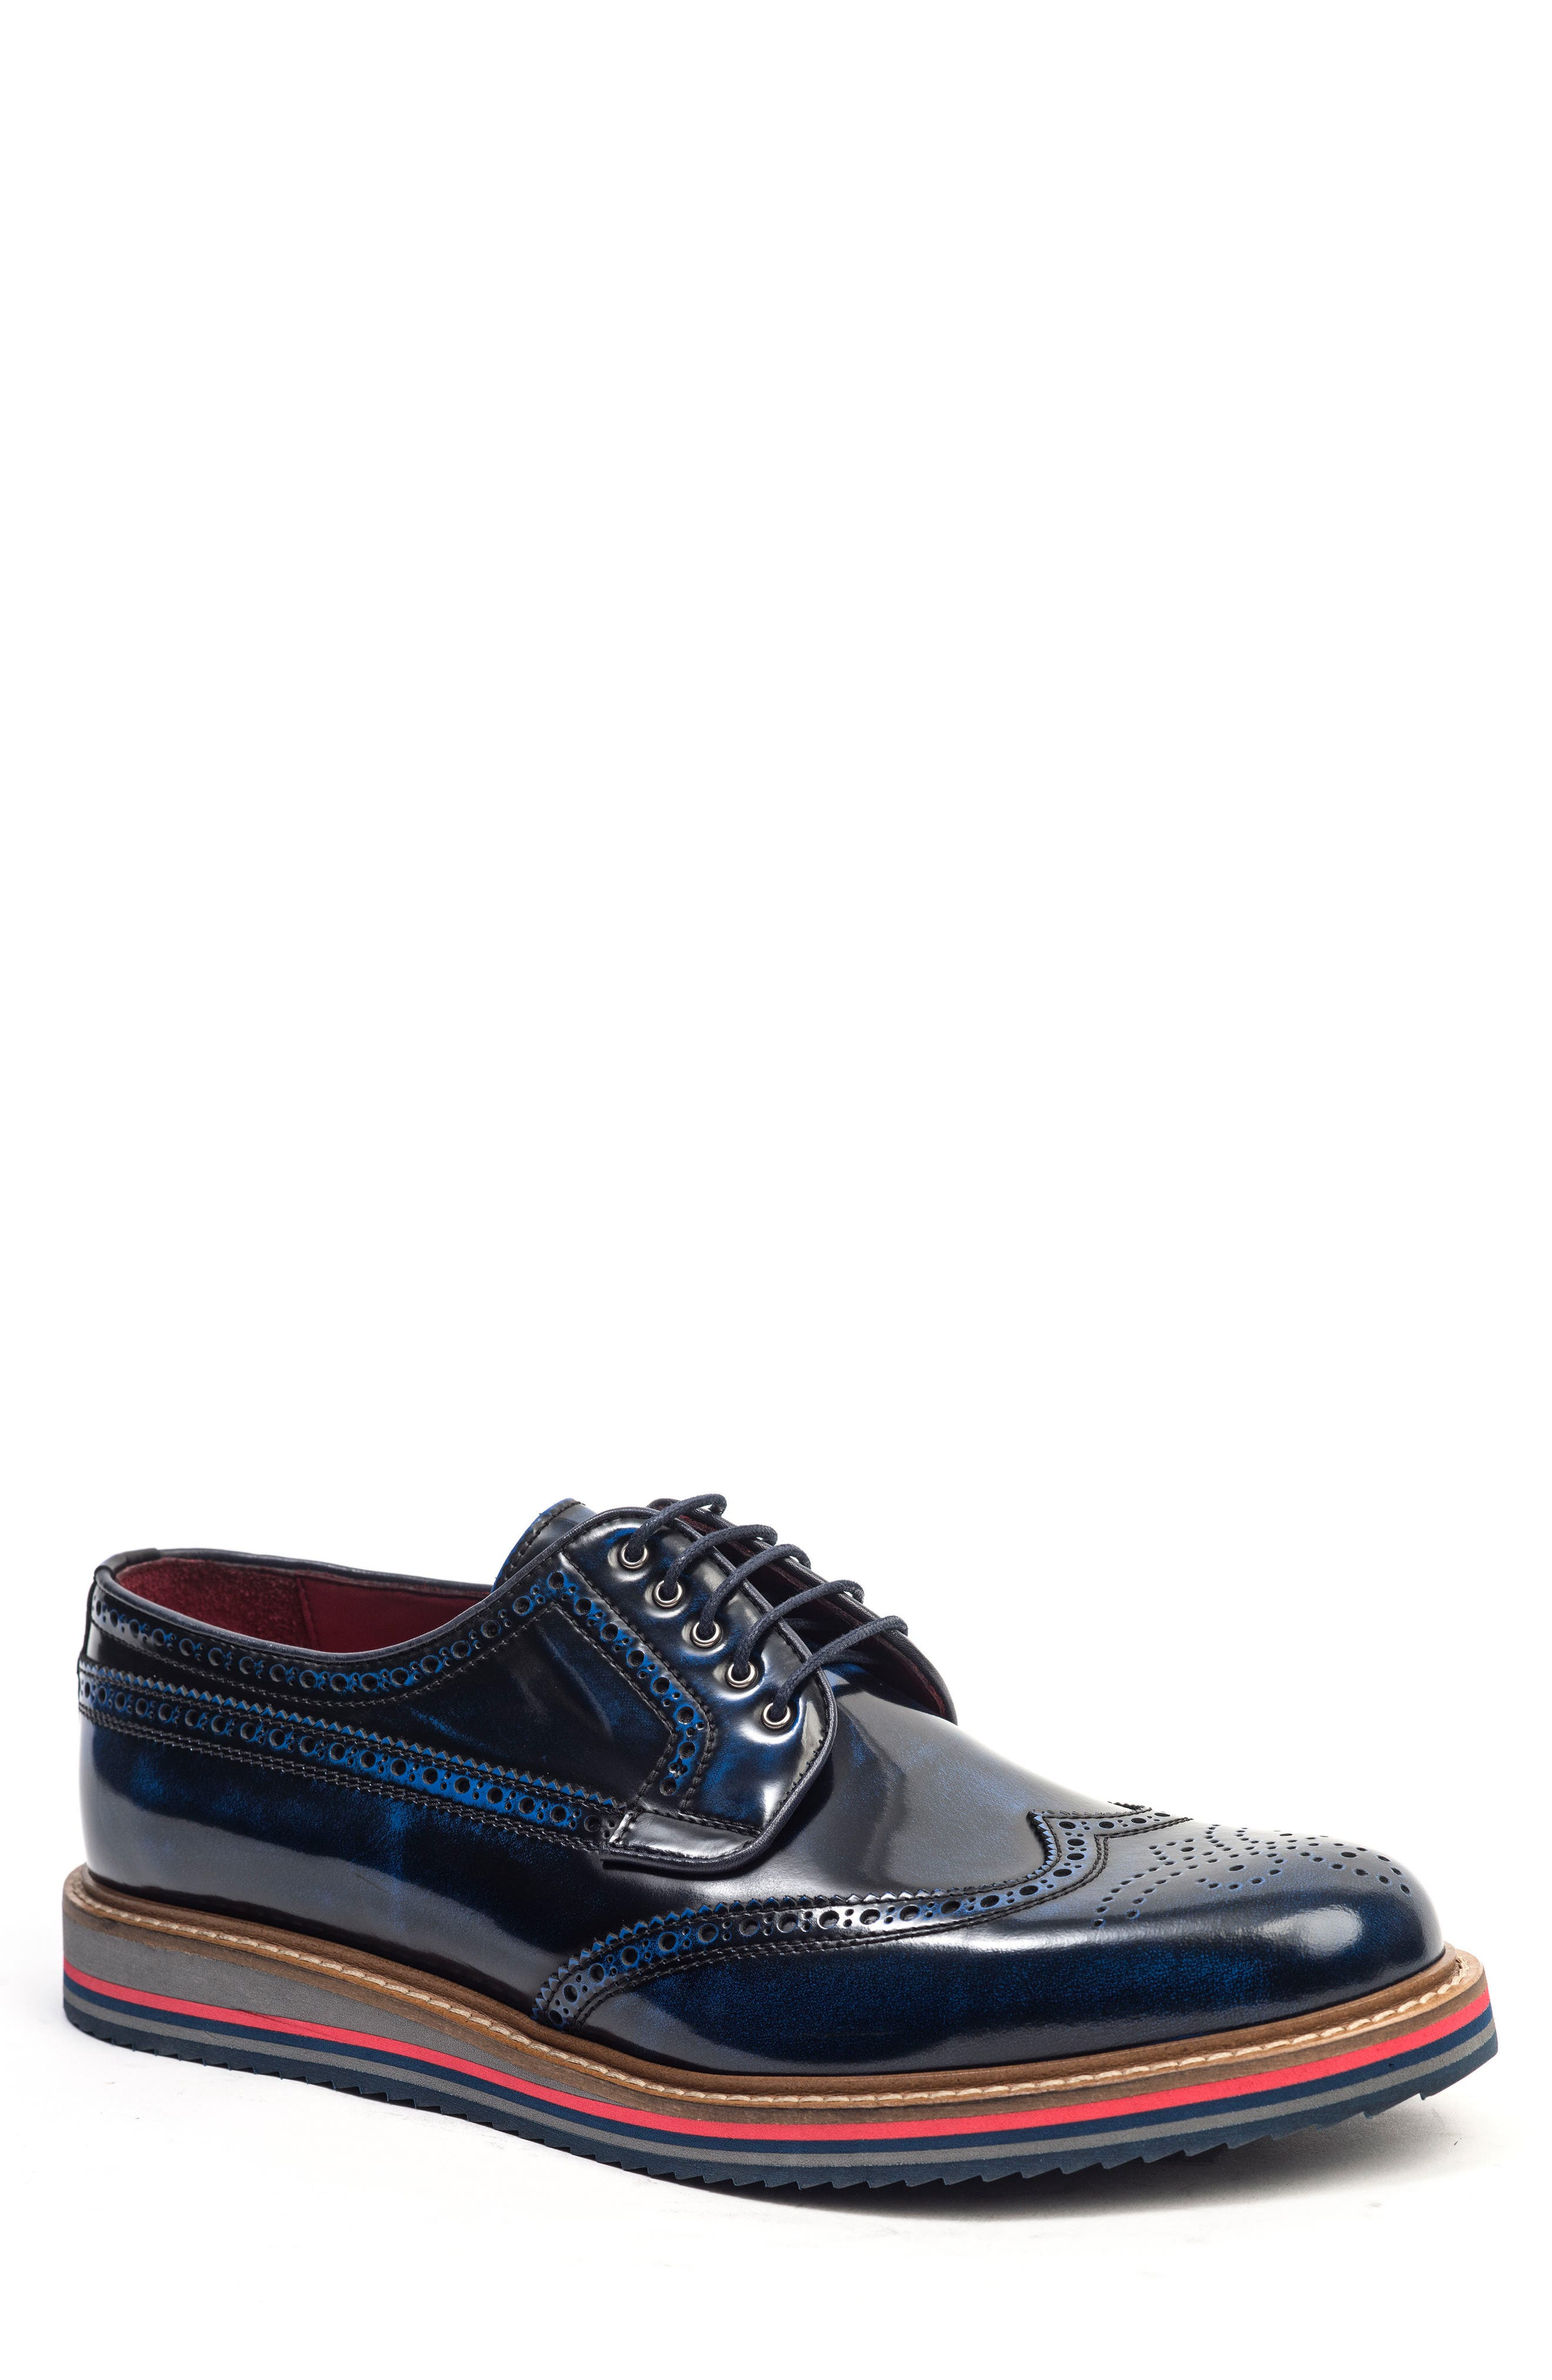 Alternate Image 1 Selected - Jared Lang Doc Sandwich Sole Wingtip Oxford (Men)